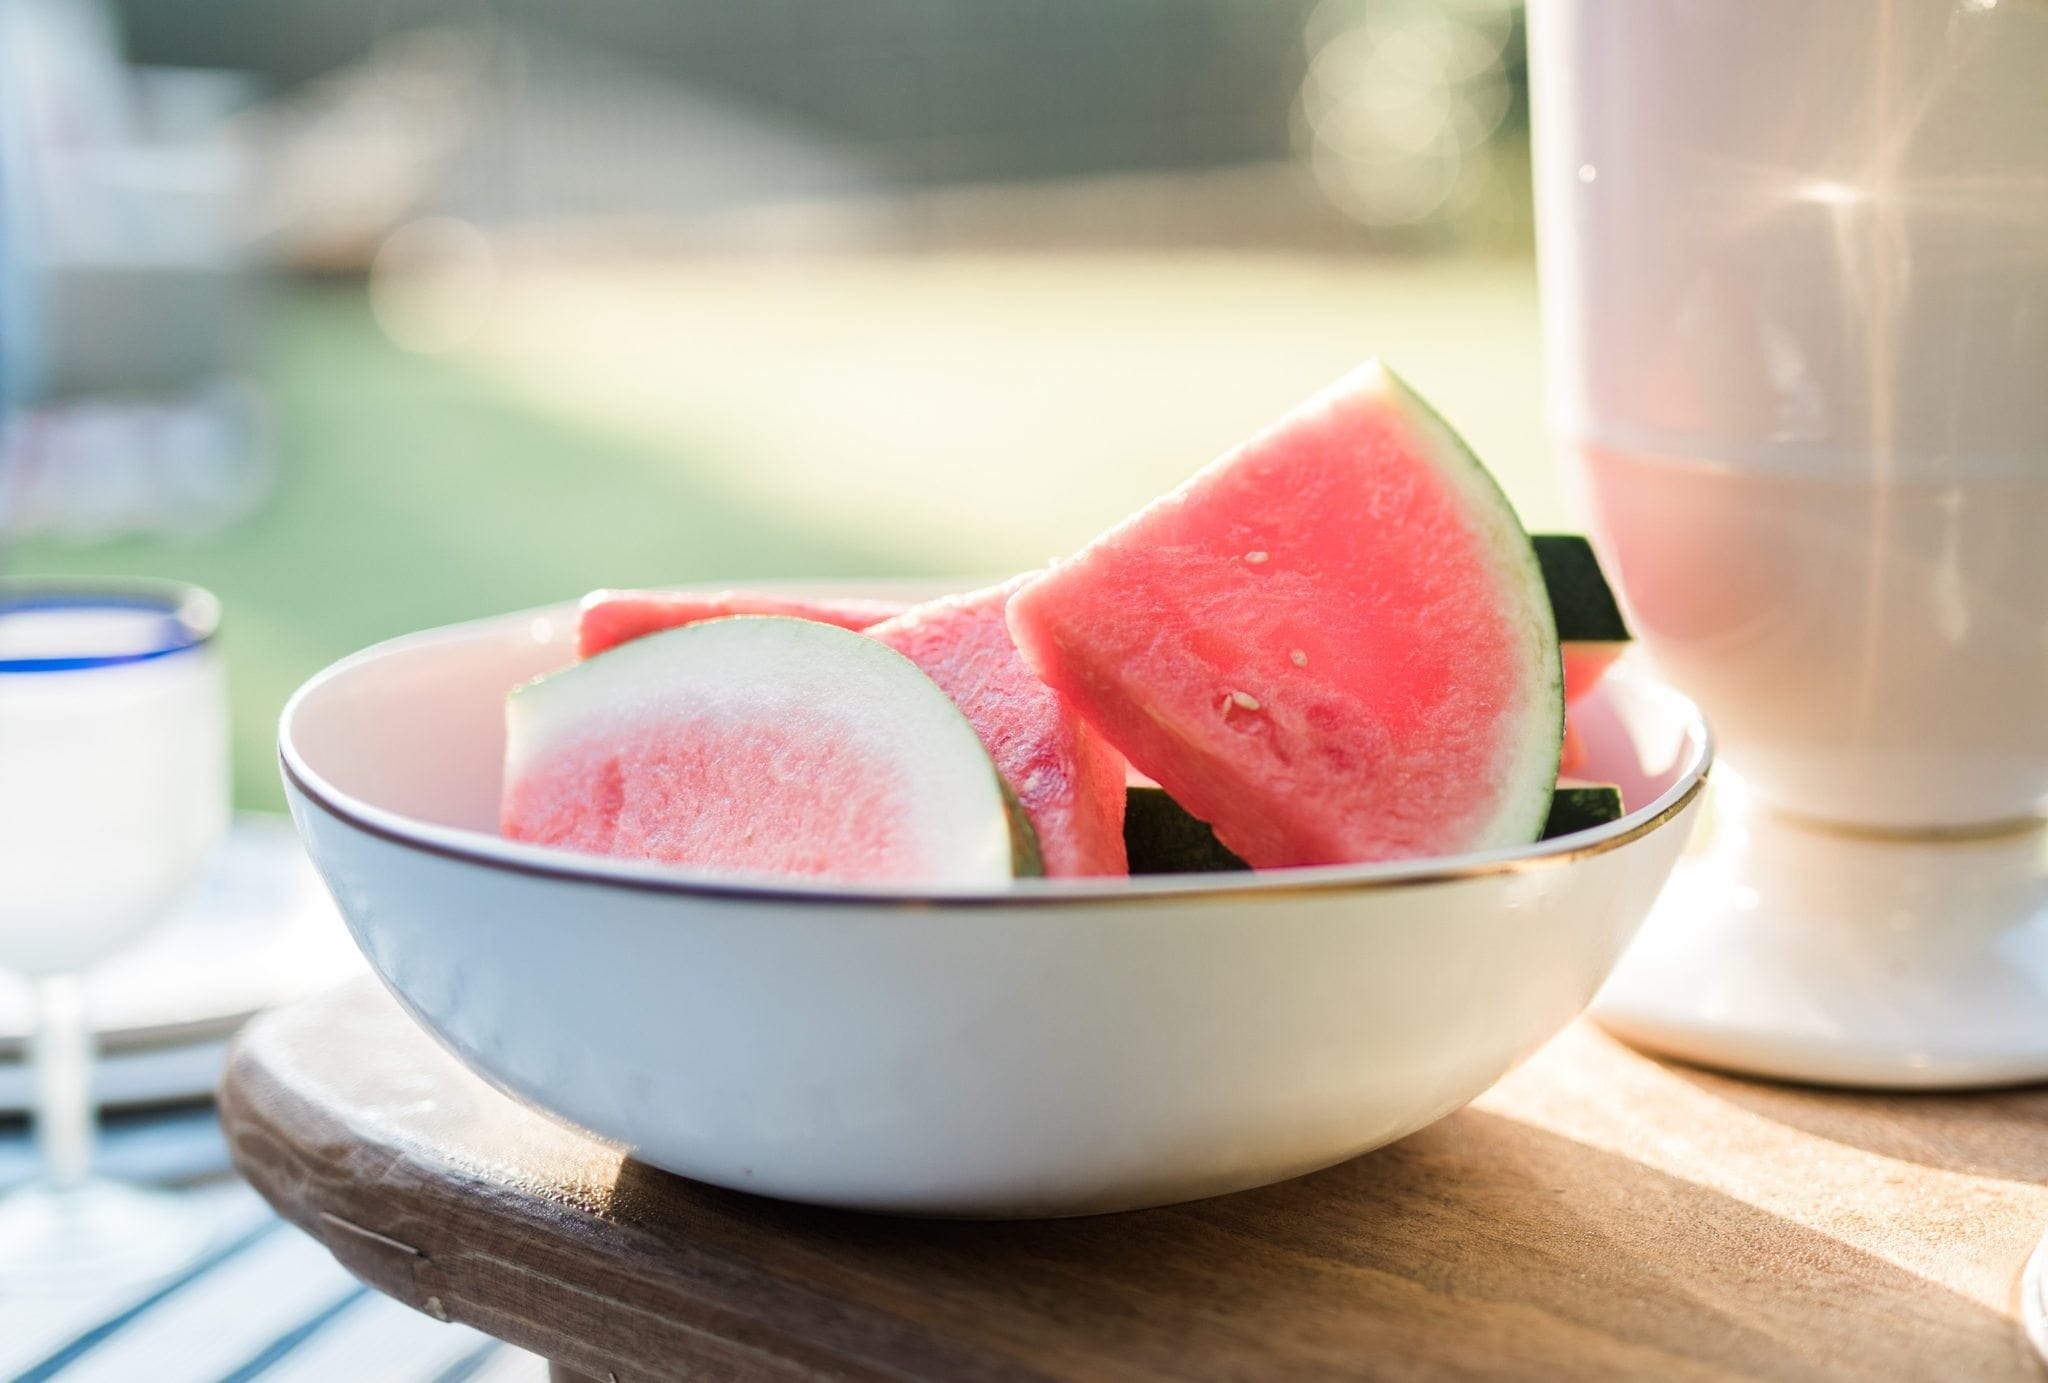 Sliced watermelon in white bowl with gold rim.